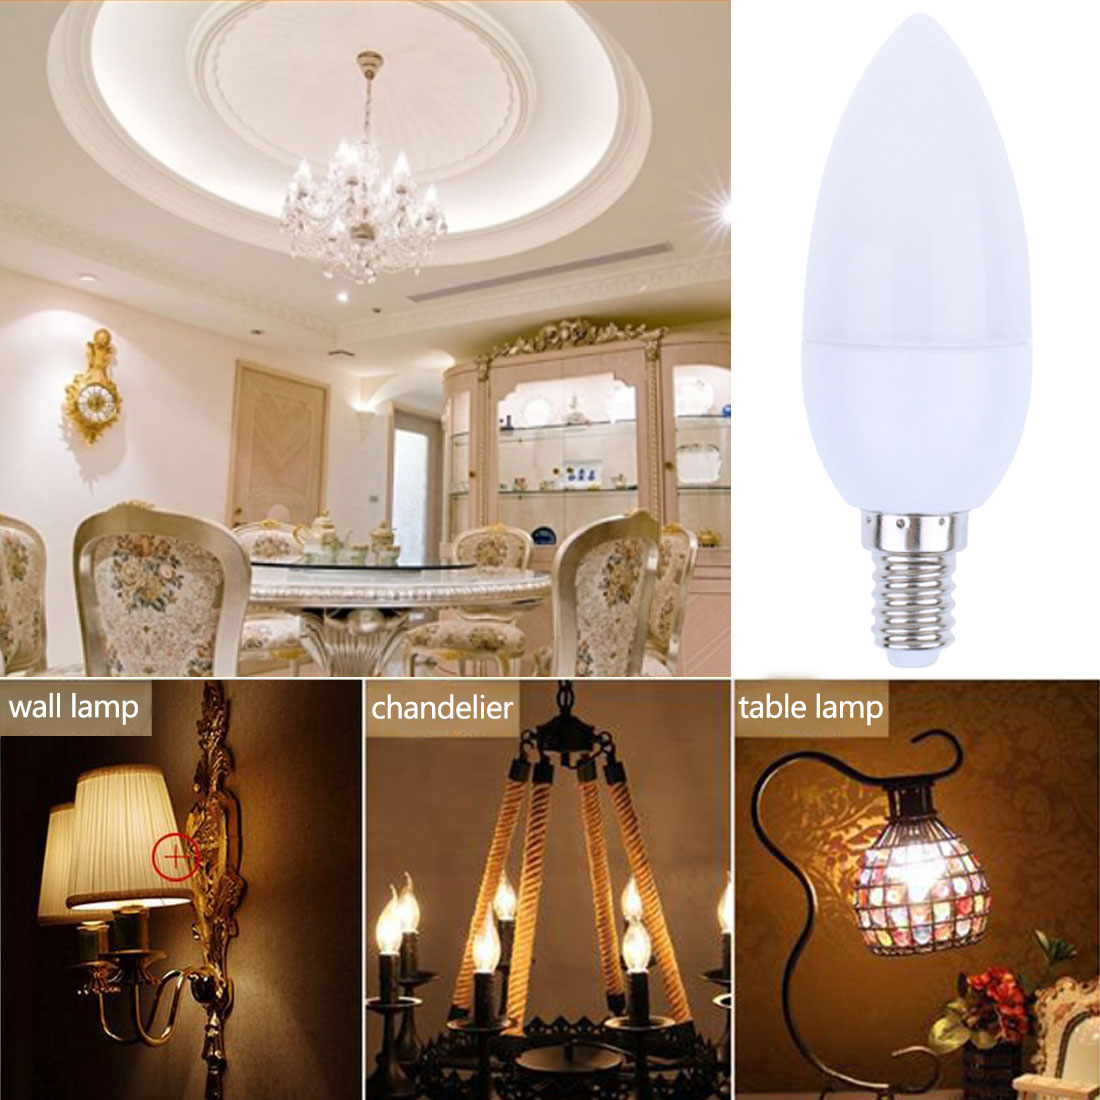 Surprising chandelier light bulbs energy saving photos simple aliexpress com buy 3w 6pcs e14 led candle bulb energy saving chandelier arubaitofo Gallery